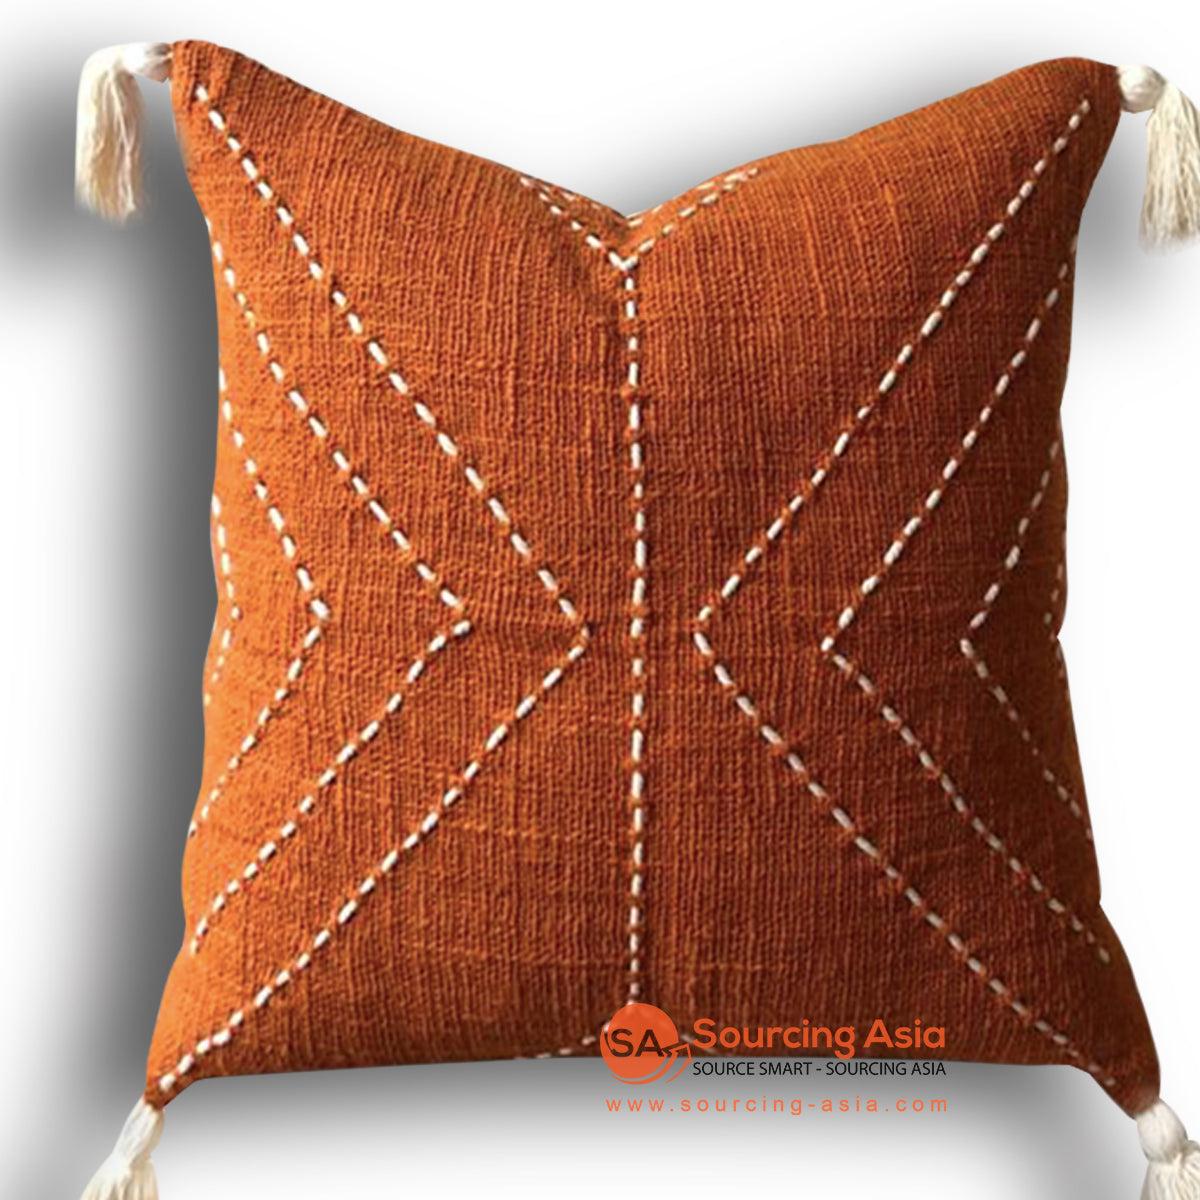 HIP019 HAND STITCHED COVER PILLOW WITH EMBROIDERY AND TASSELS 50 X 50 CM